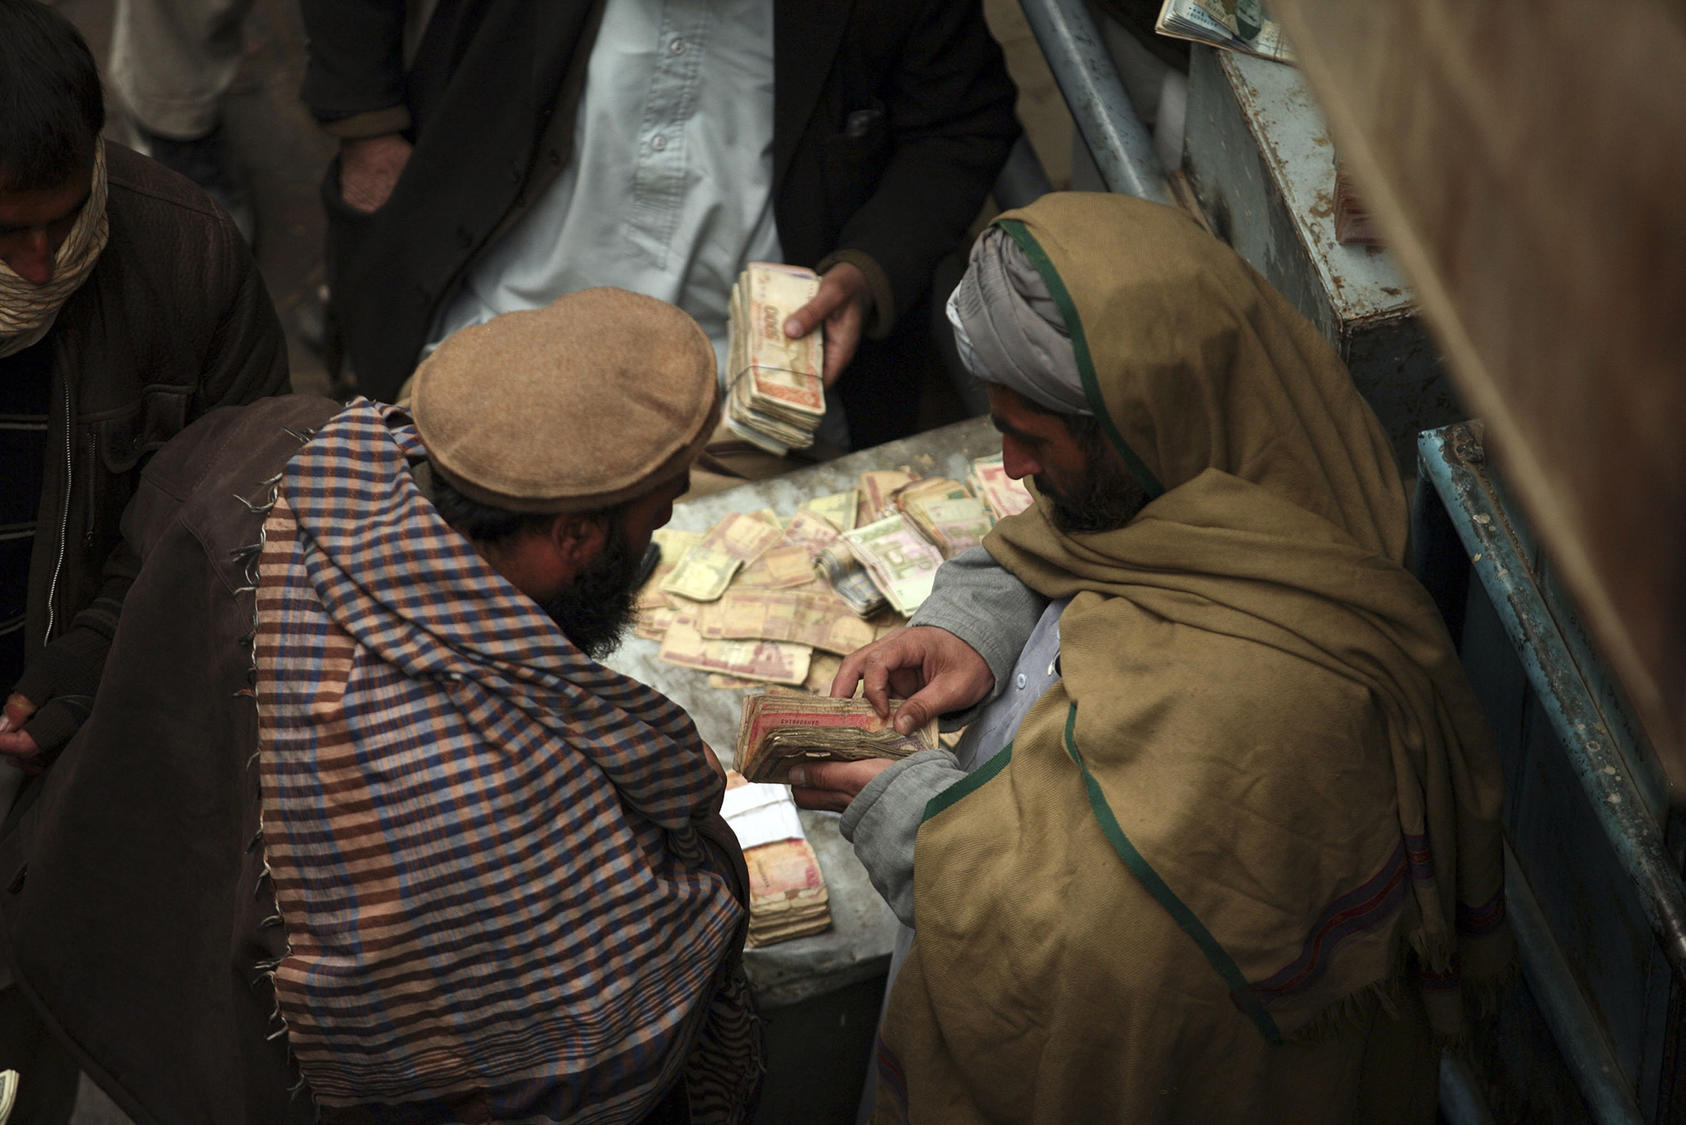 Men negotiate money exchanges at a market in Kabul. (Michael Kamber/The New York Times)